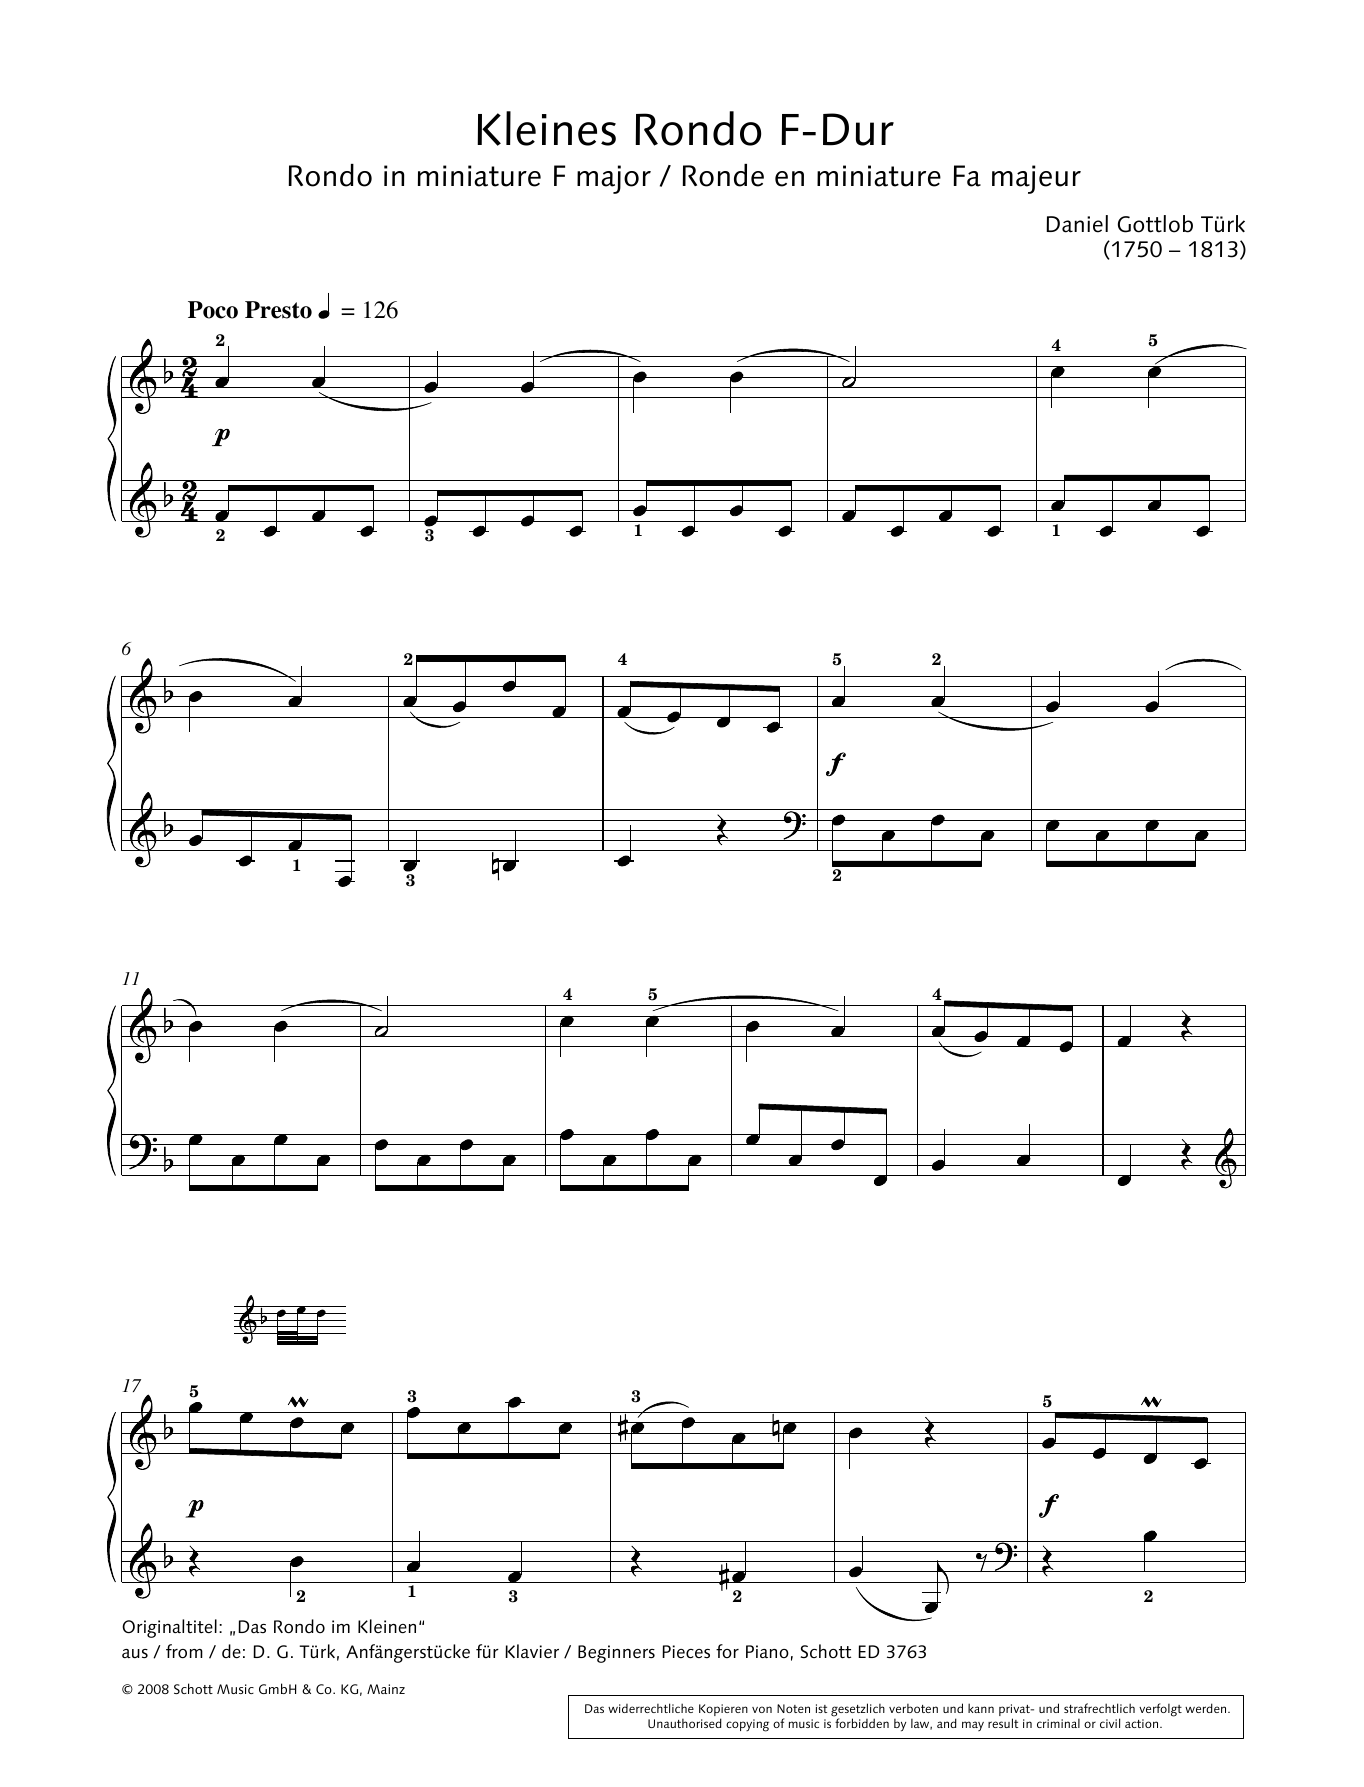 Rondo in miniature in F major Sheet Music